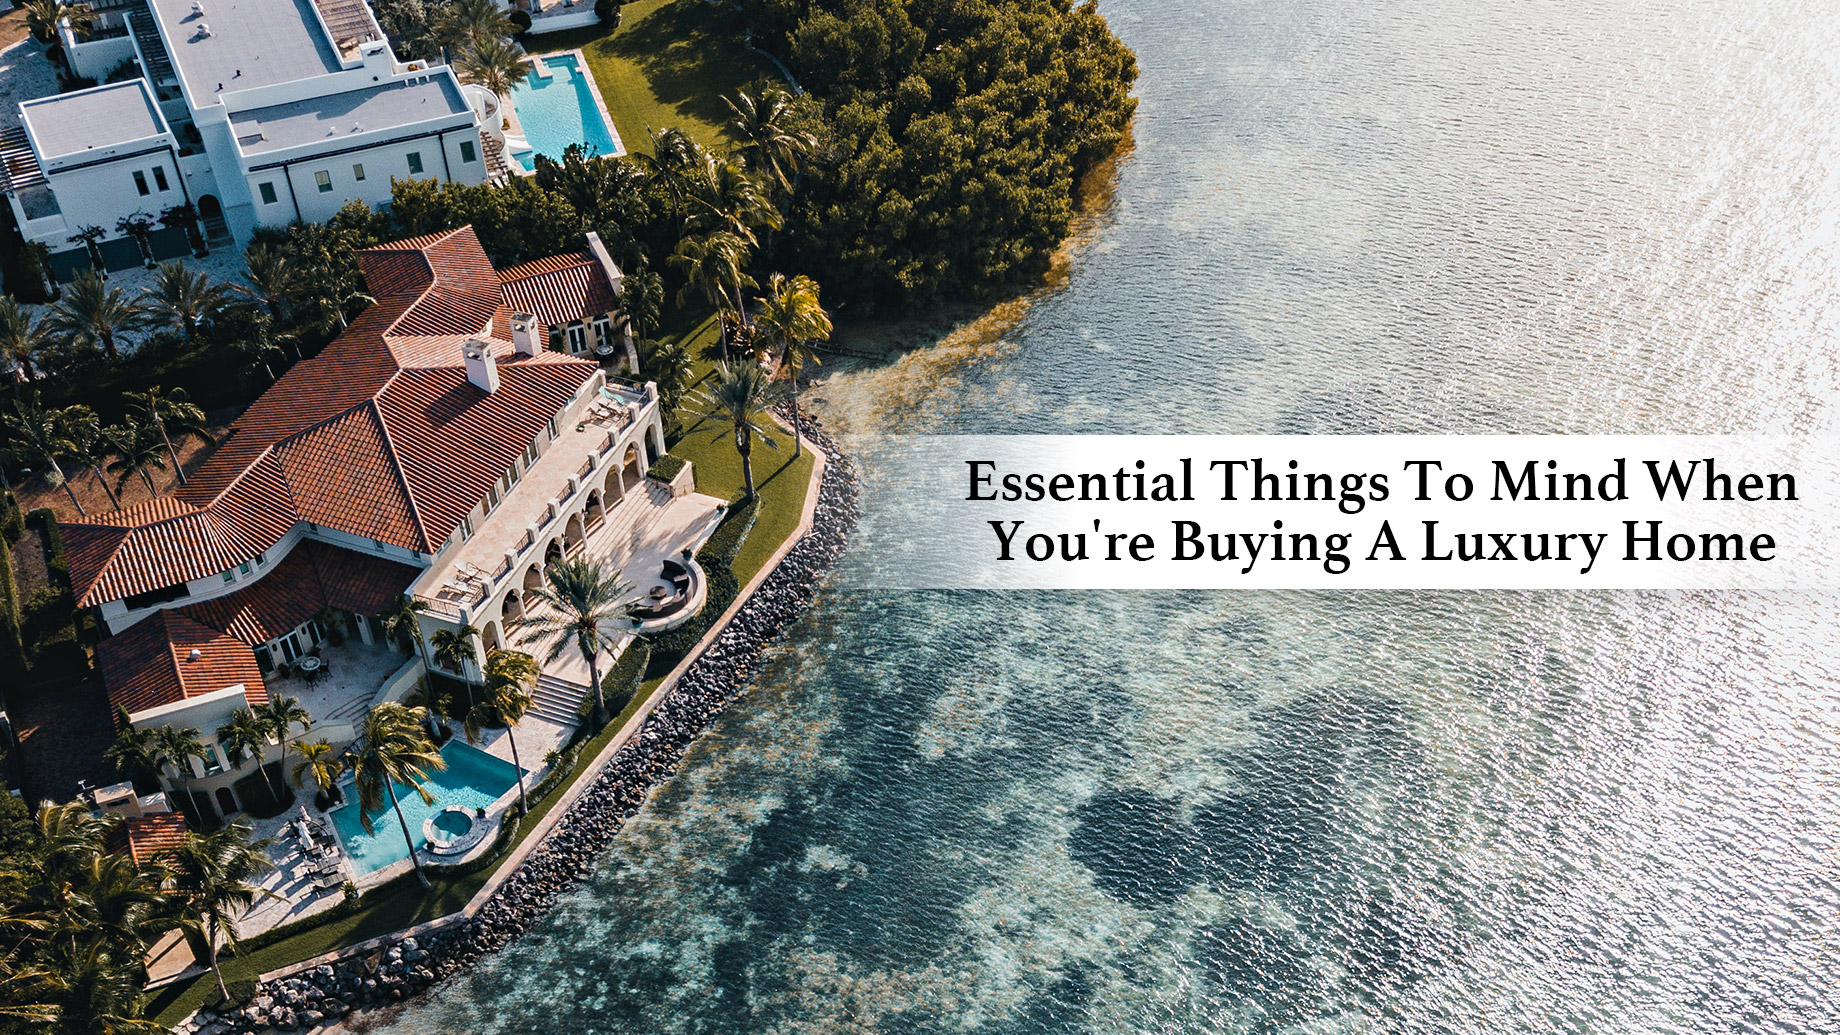 Essential Things To Mind When You're Buying A Luxury Home